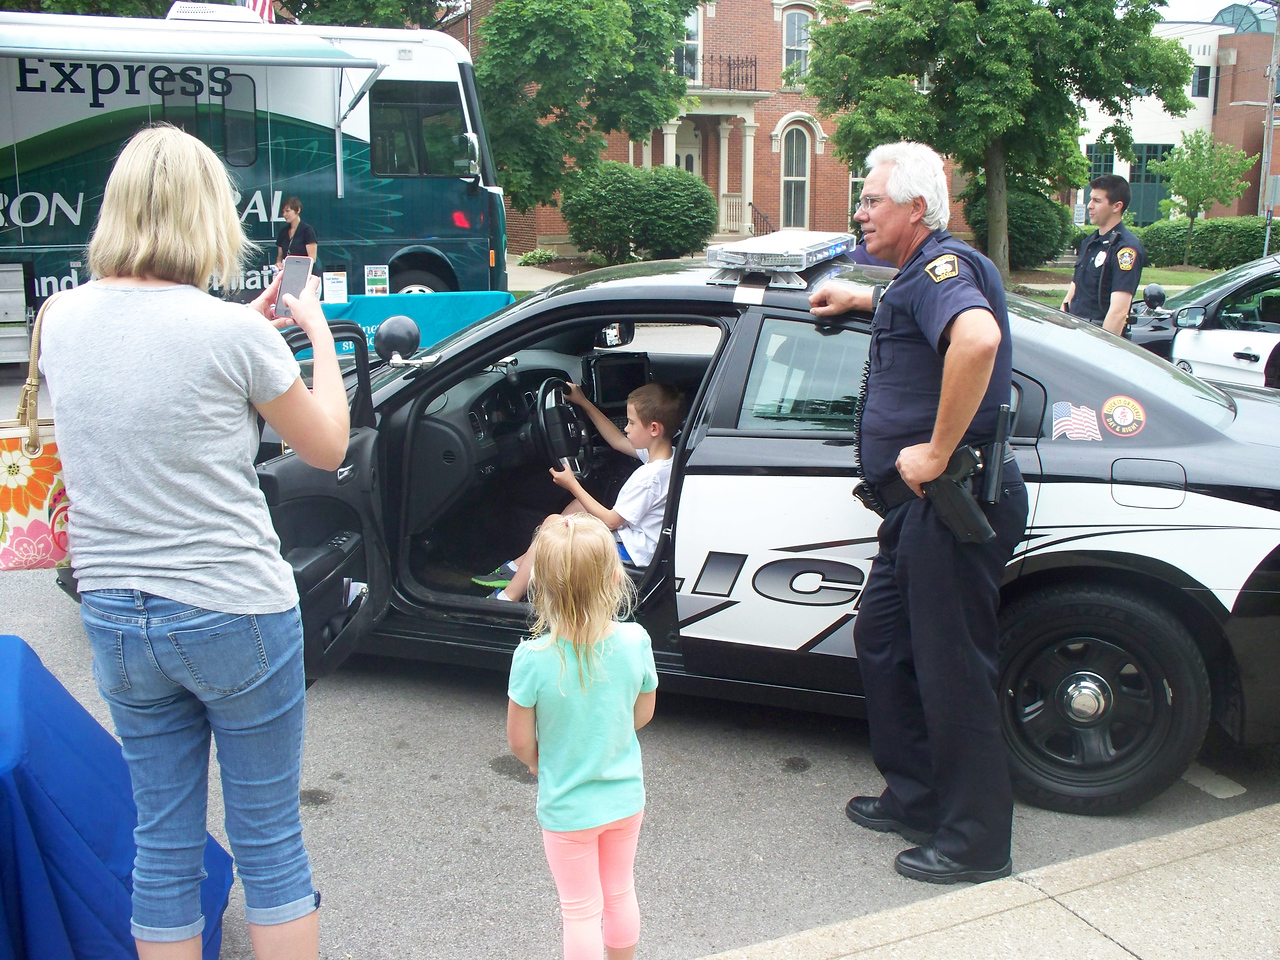 """NIKKI RHOADES / GAZETTE Mom Stephanie Shoemaker, of Medina, and sister Reagan Shoemaker look on as Brunswick Police Officer Steve Kartha shows his vehicle to Luke Shoemaker. The family attended the Kids Day of Safety & Play for the first time. Stephanie said of the event, """"It's a lot of fun — great for kids and families."""""""